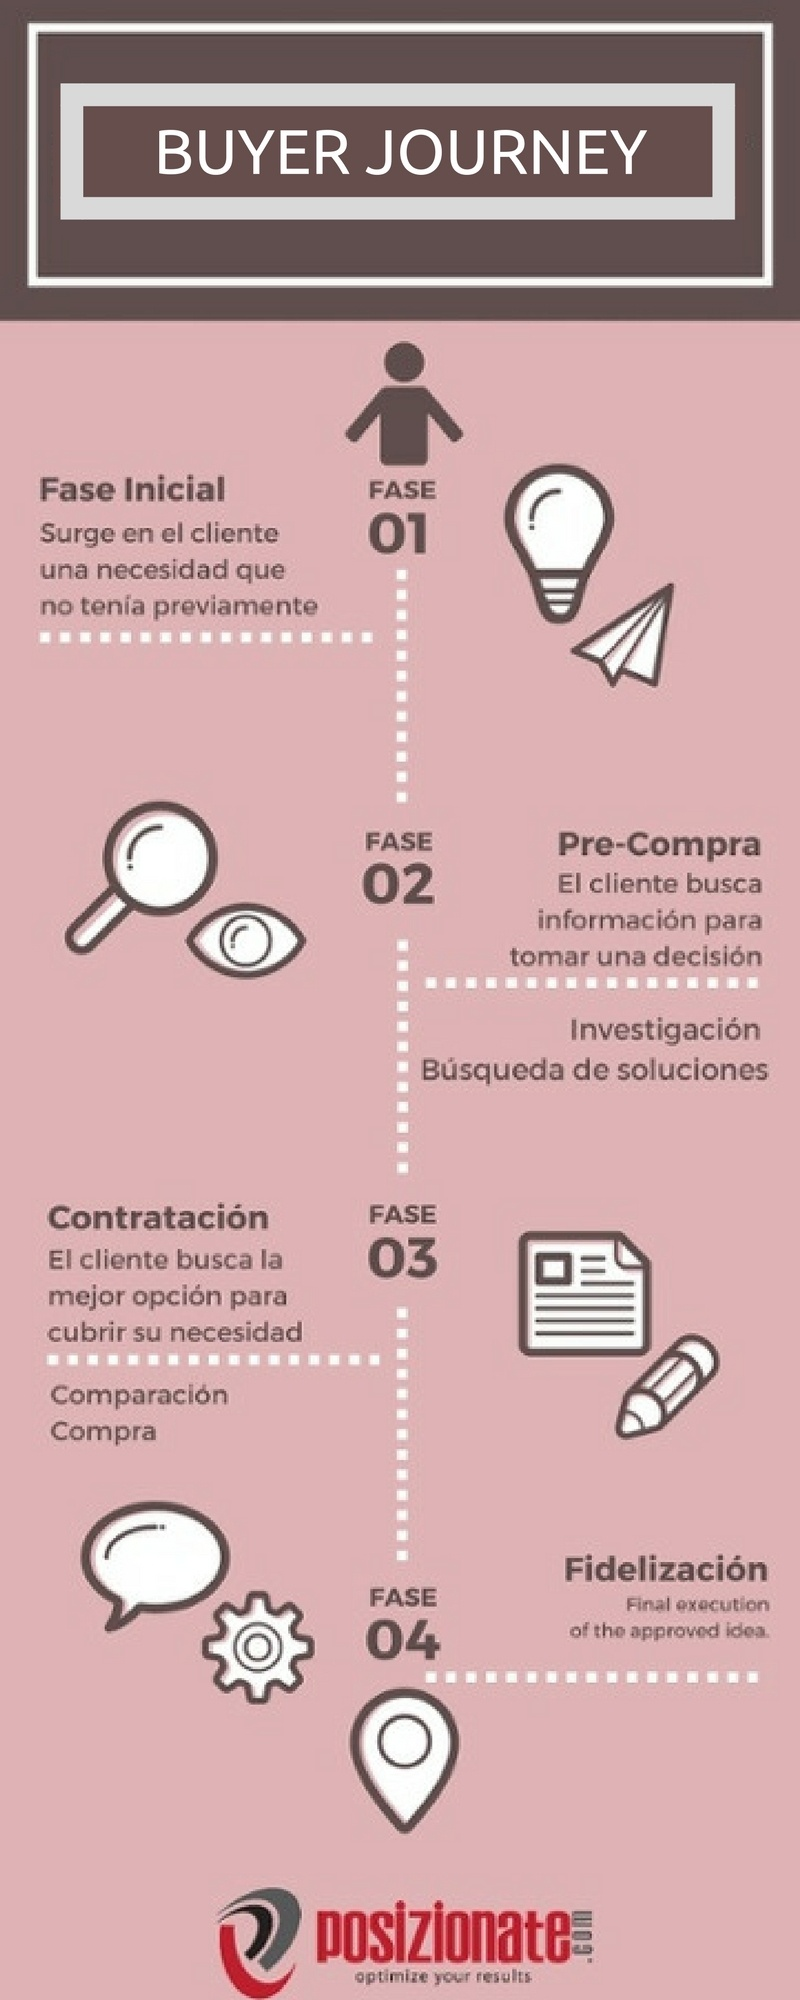 Qué es el Buyer Journey #infografia #infographic #marketing